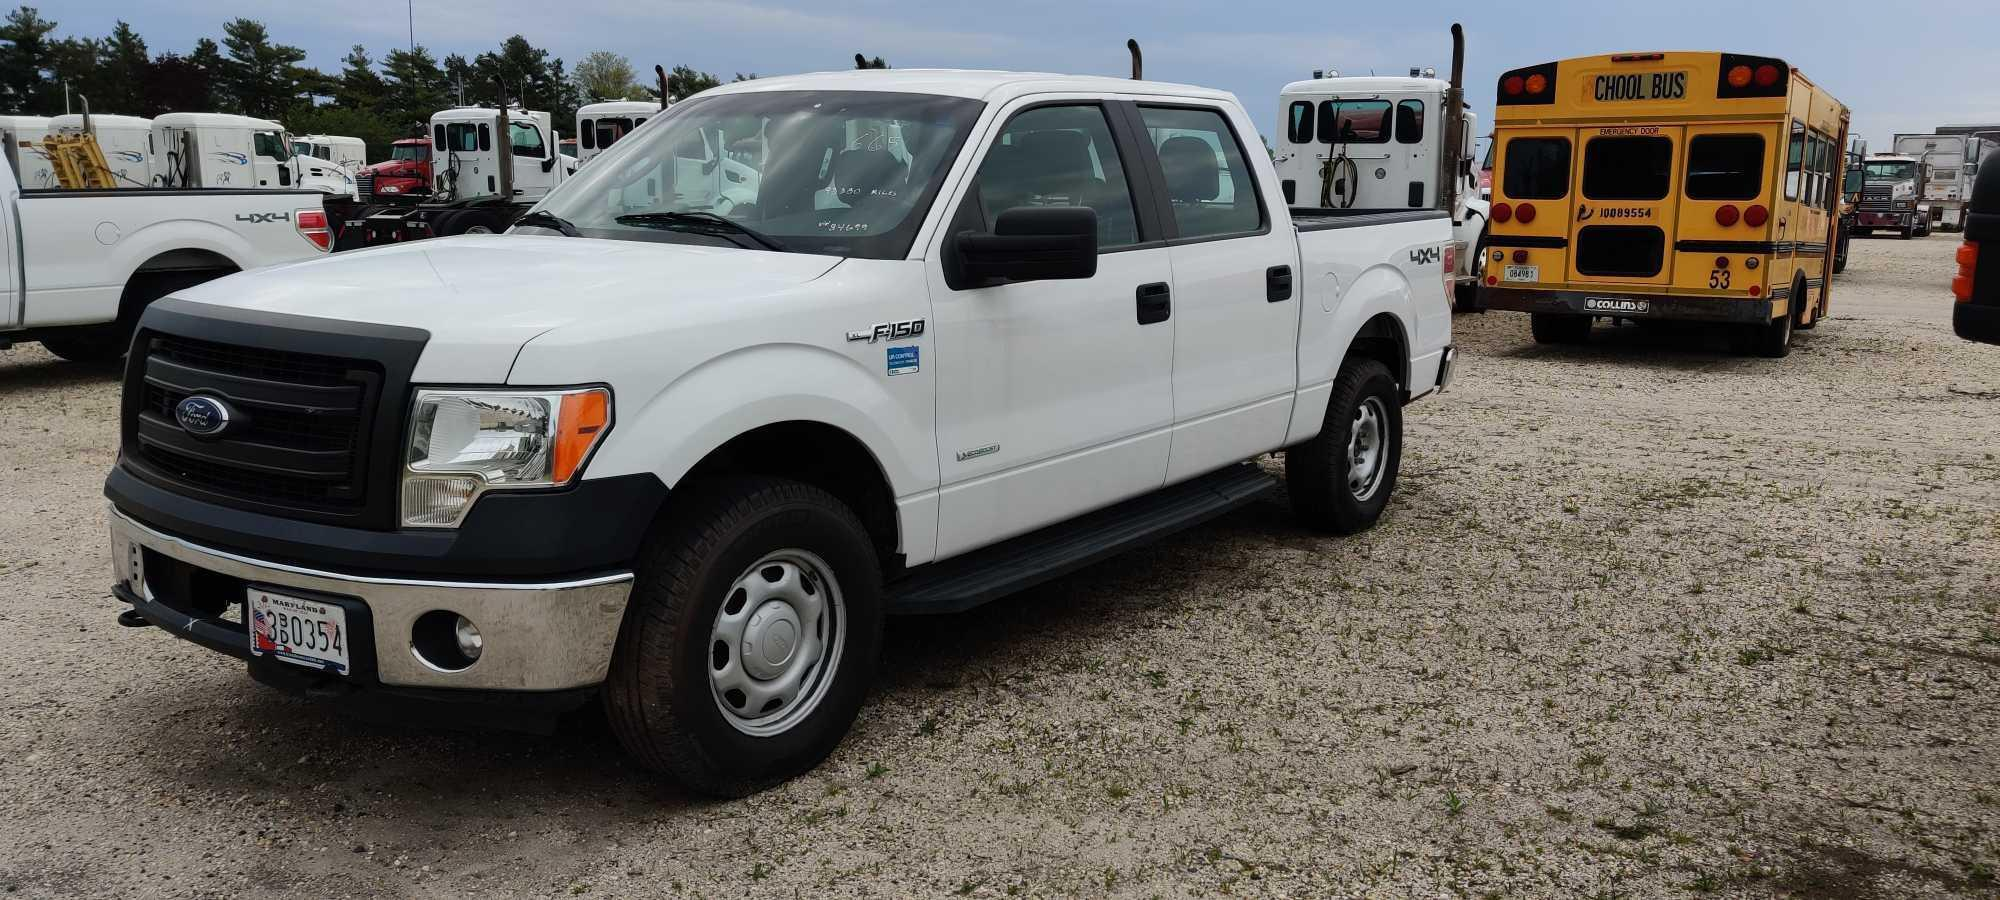 2013 FORD F150 PICKUP TRUCK VN:A84699 4x4 Powered By